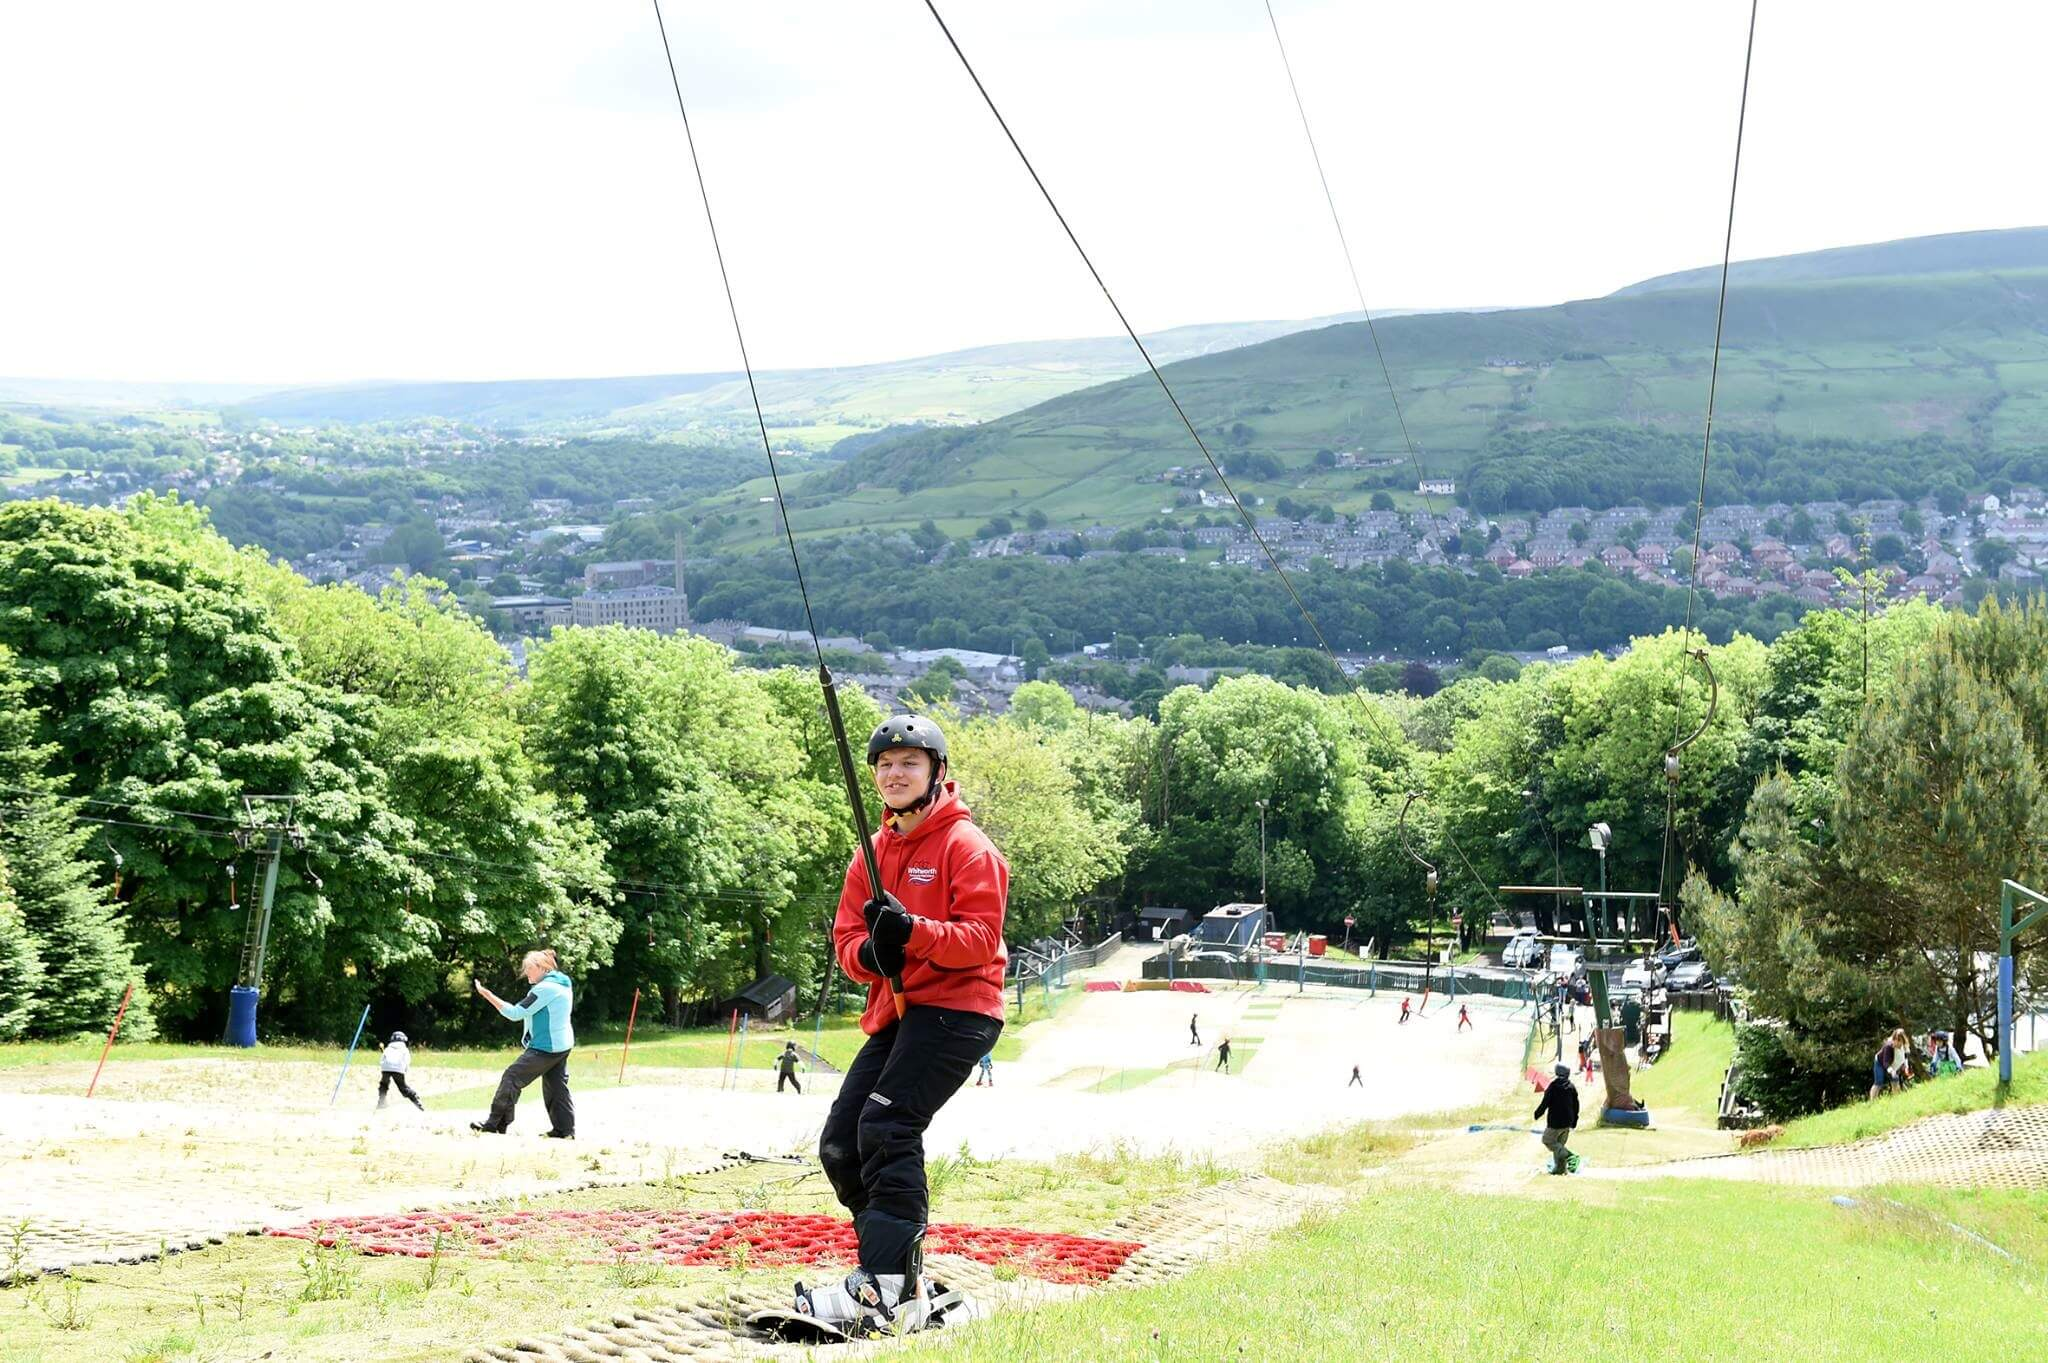 Image of person on a ski slope at The Hill - Ski Rossendale